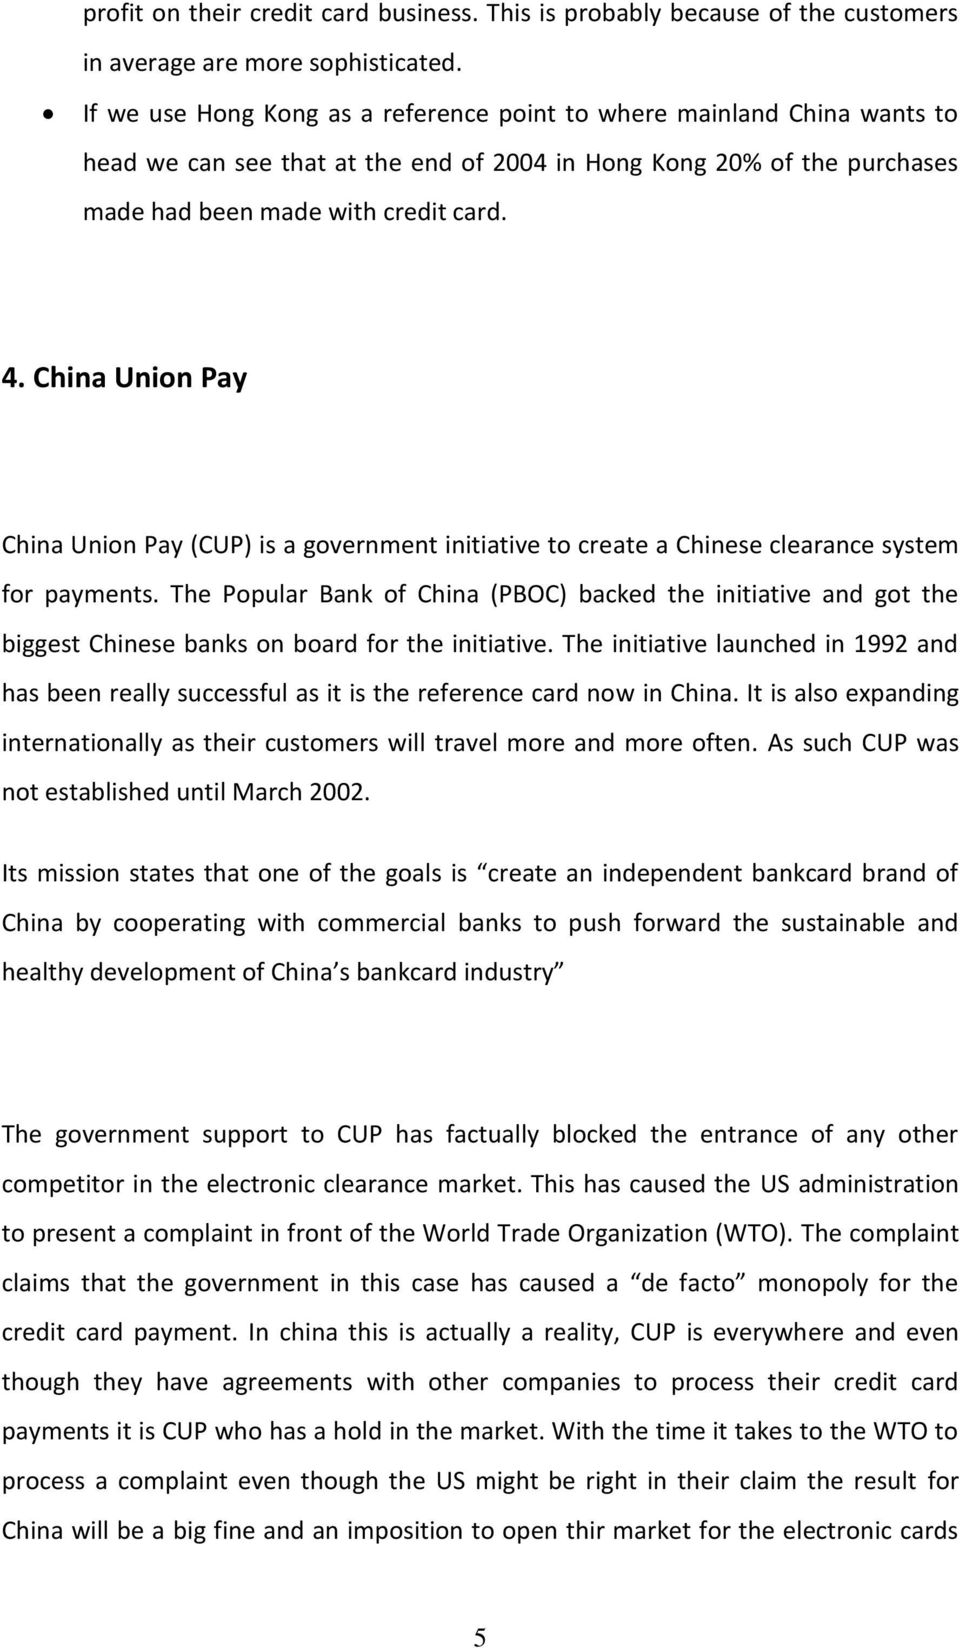 China Union Pay China Union Pay (CUP) is a government initiative to create a Chinese clearance system for payments.